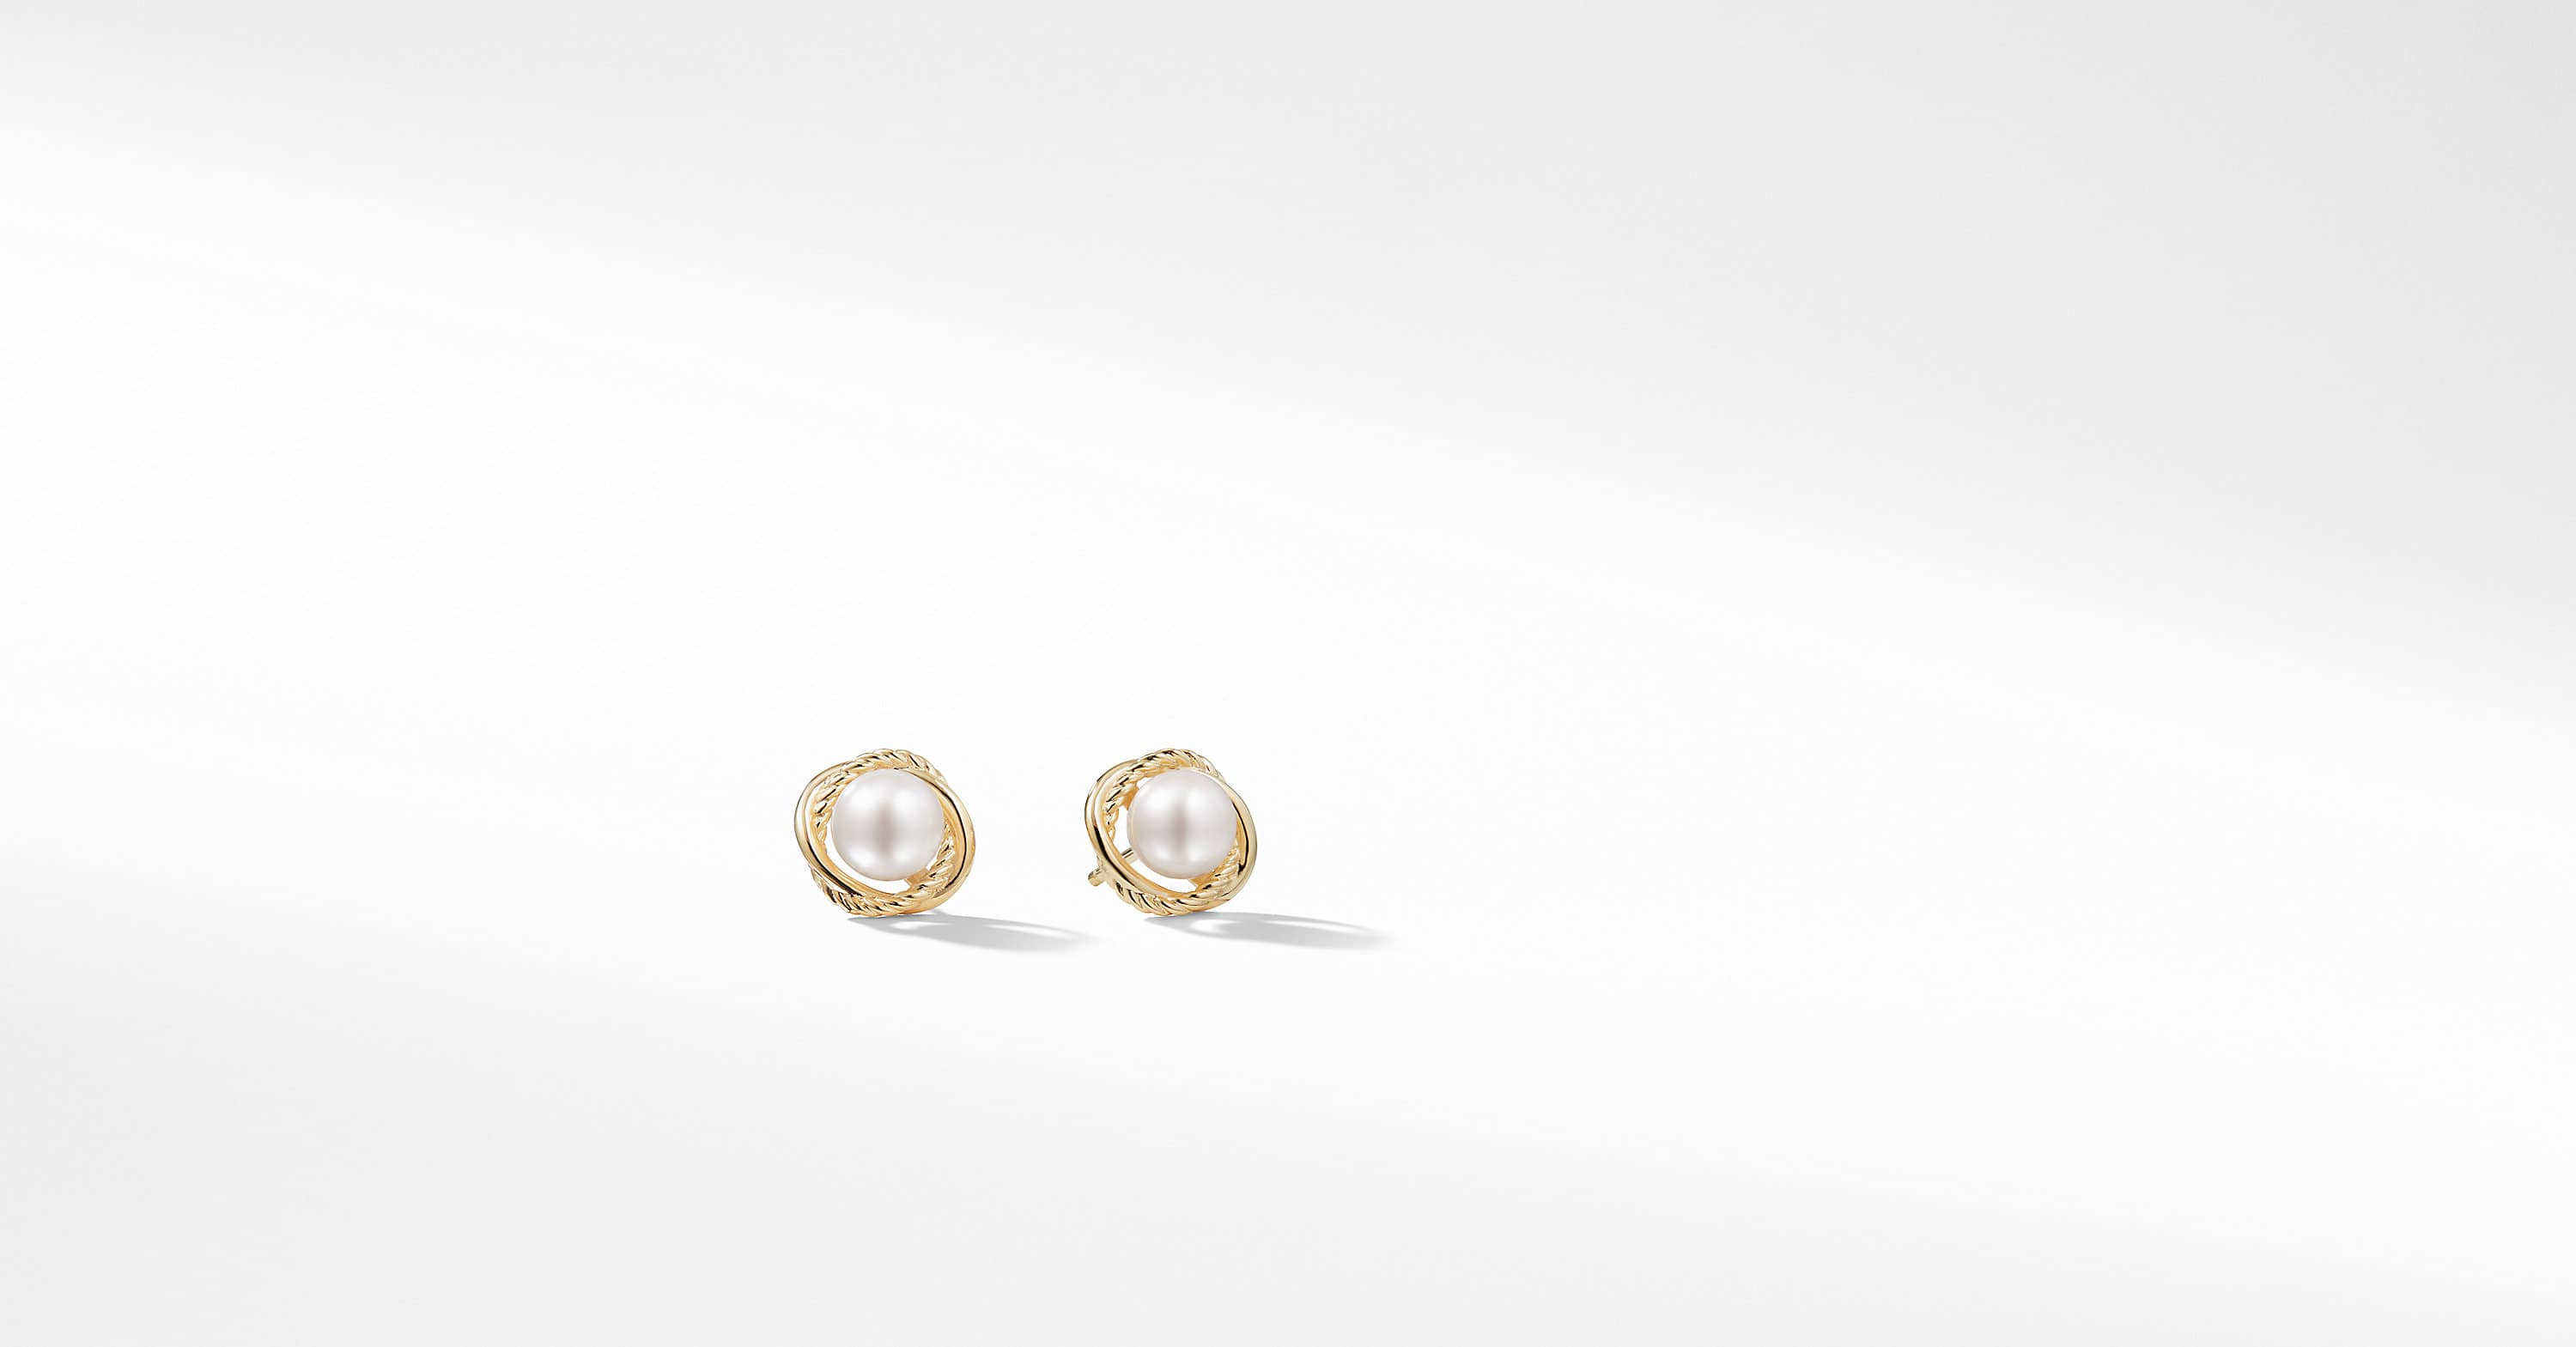 Infinity Earrings with Pearls in 18K Gold